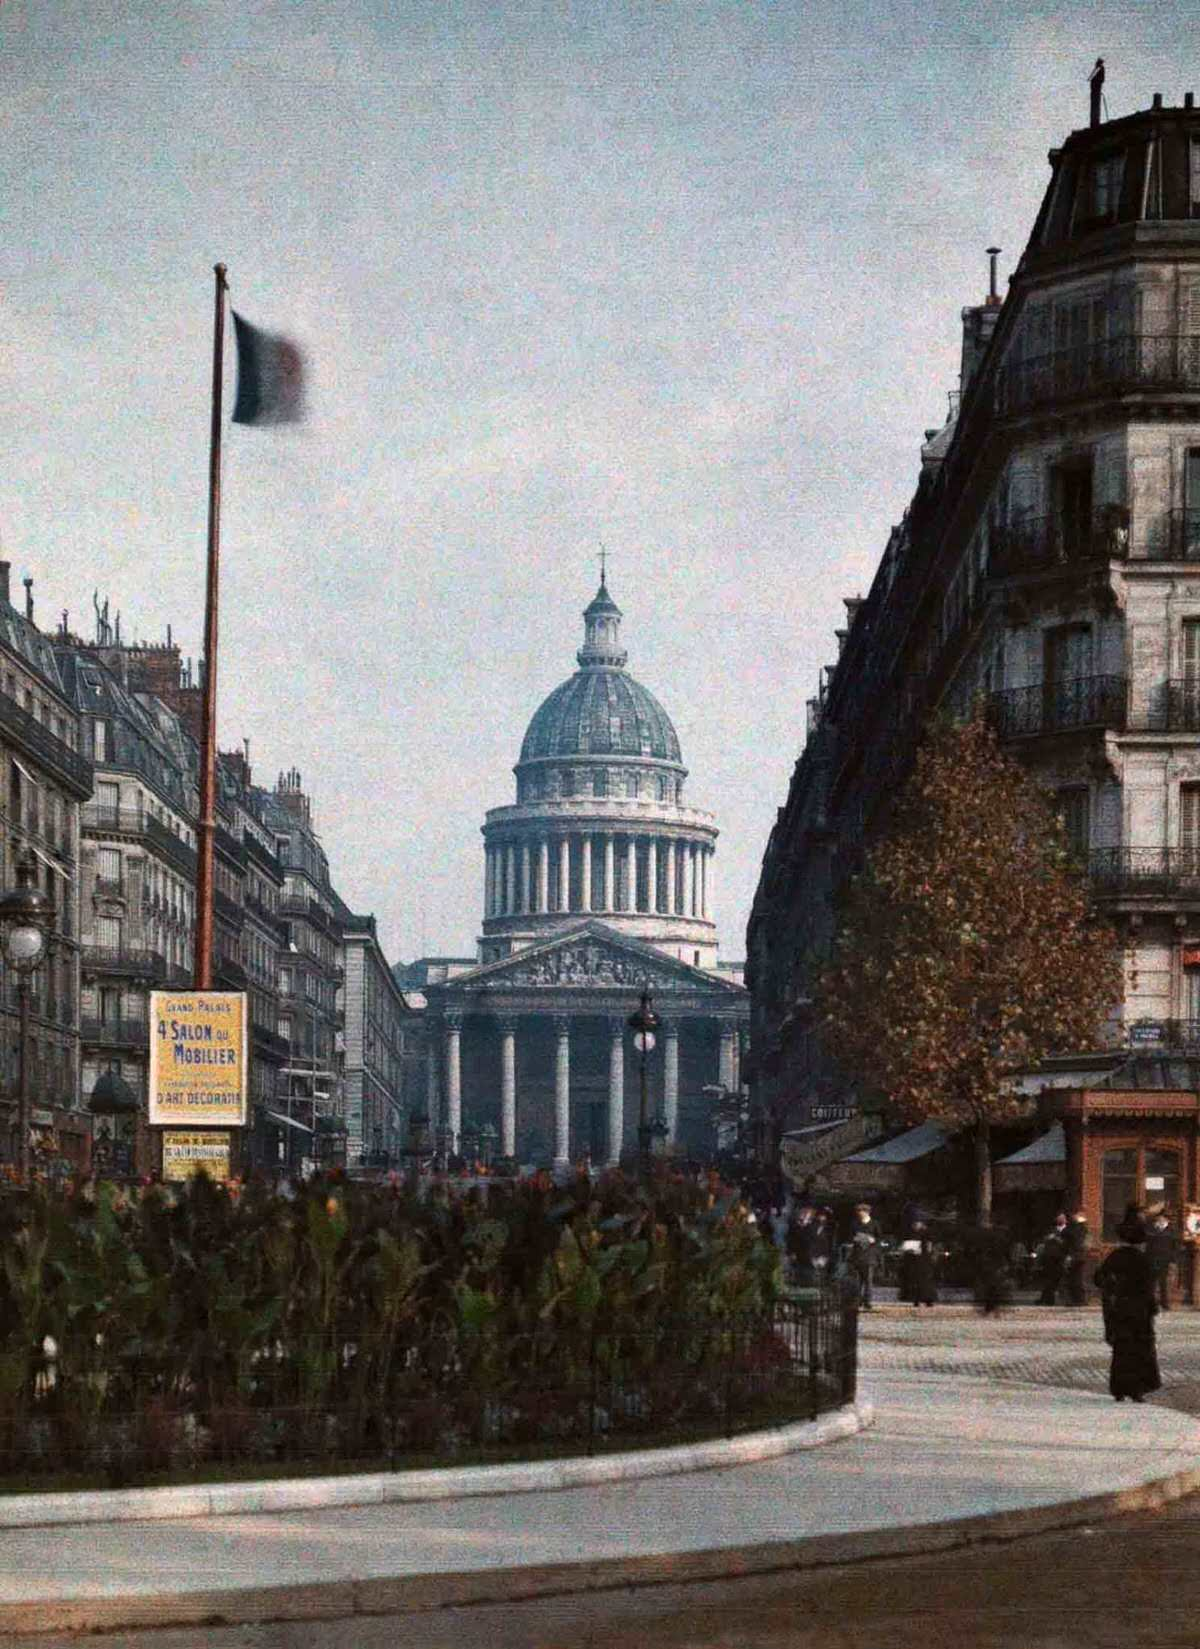 A view down the street to the Panthéon.